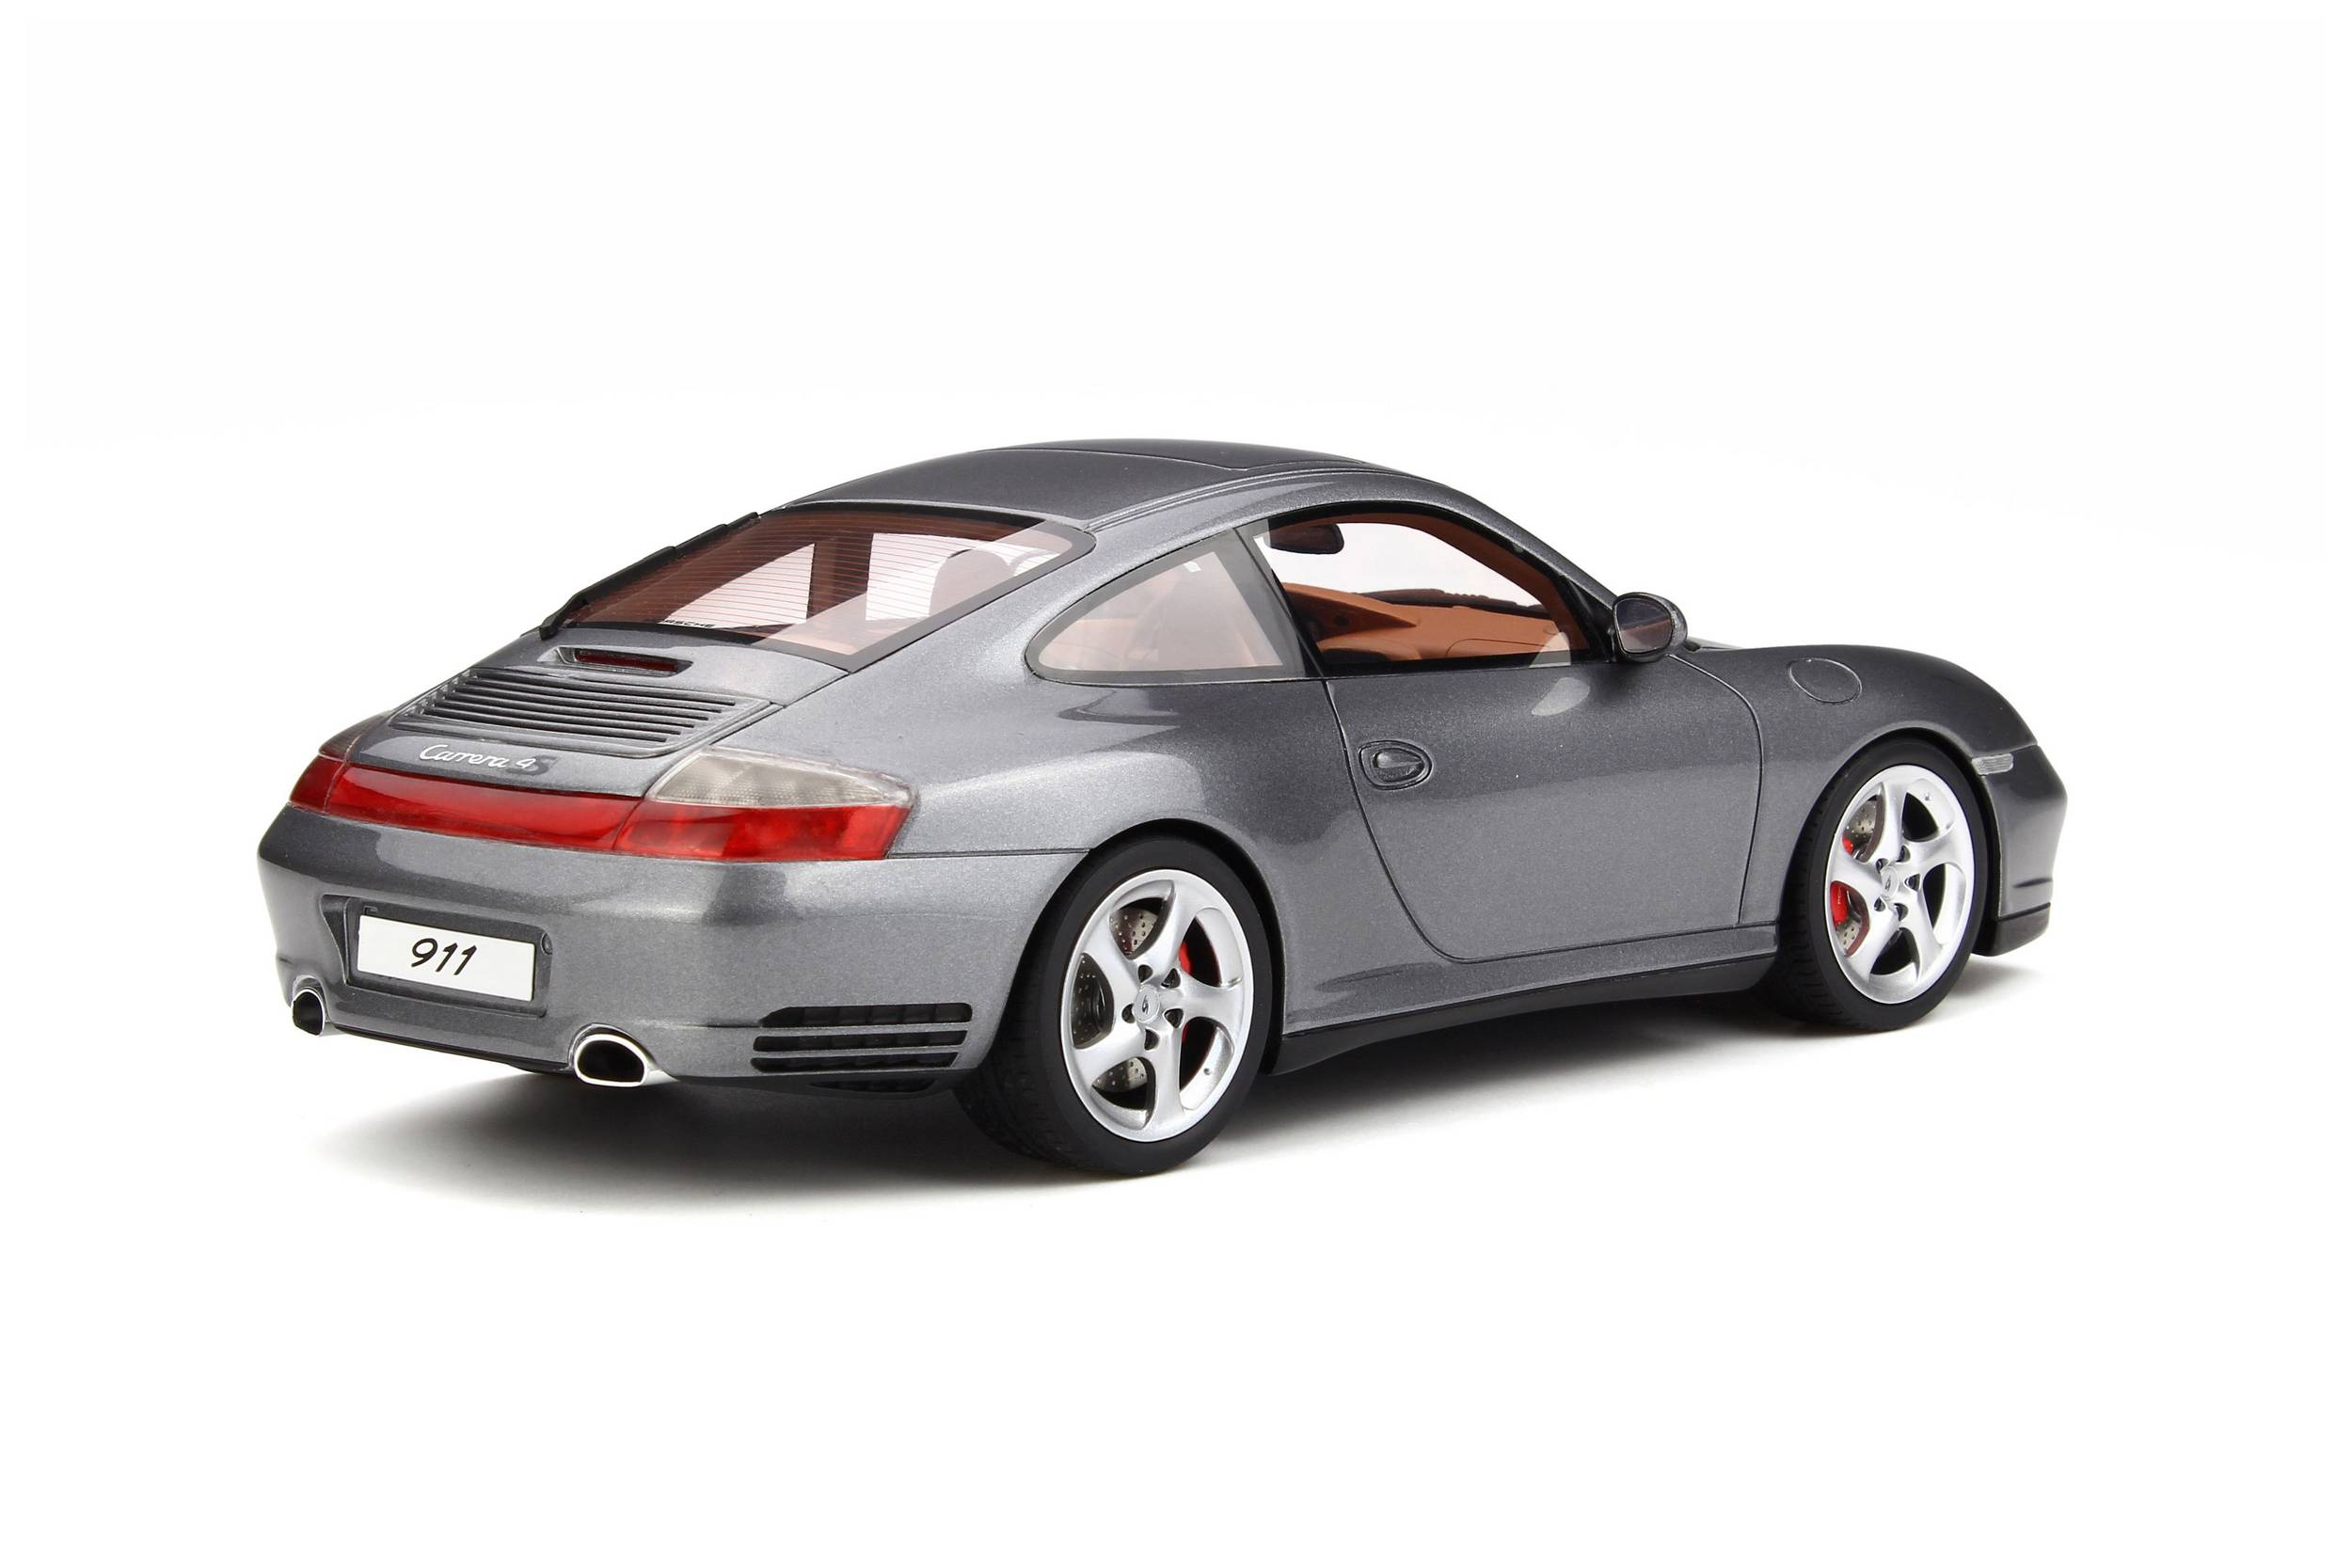 porsche 911 996 carrera 4s voiture miniature de collection gt spirit. Black Bedroom Furniture Sets. Home Design Ideas